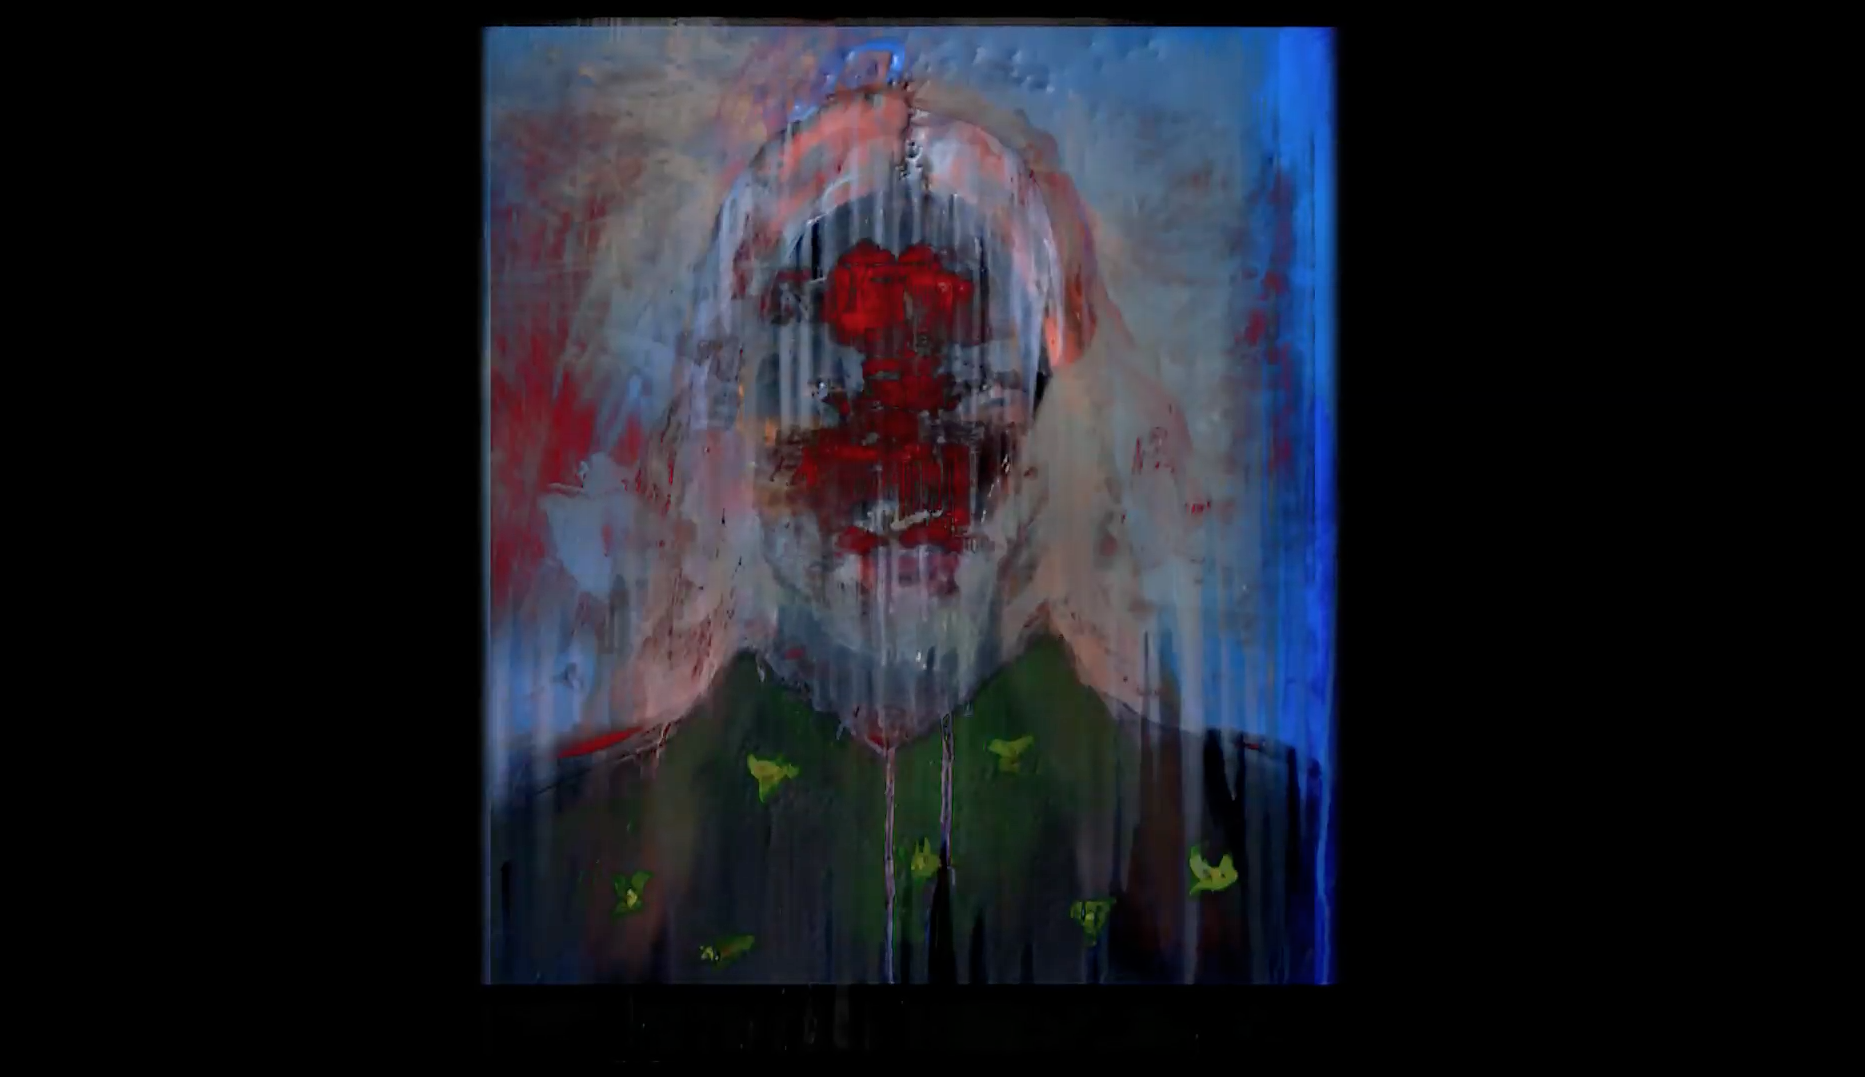 THE PANTHEIST - 'film painting' - a collaboration with Jesse Leroy Smith